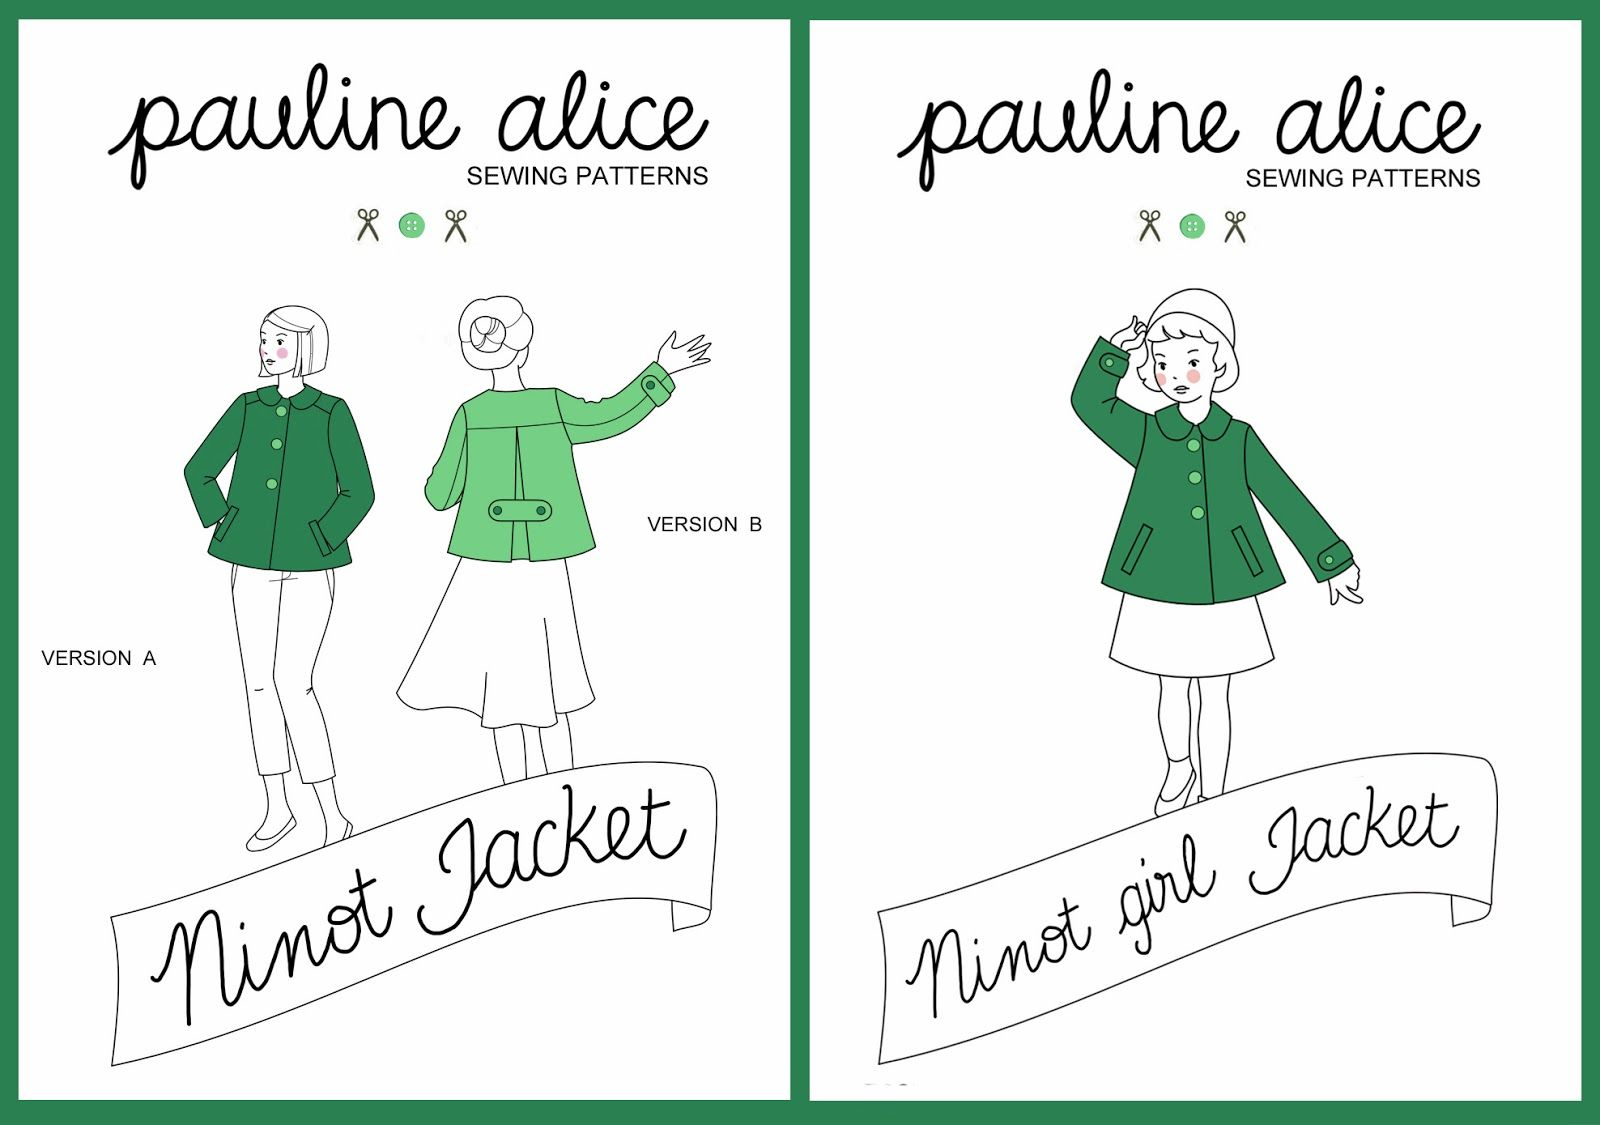 pauline alice - Sewing, patterns, handmade clothing & inspiration ...